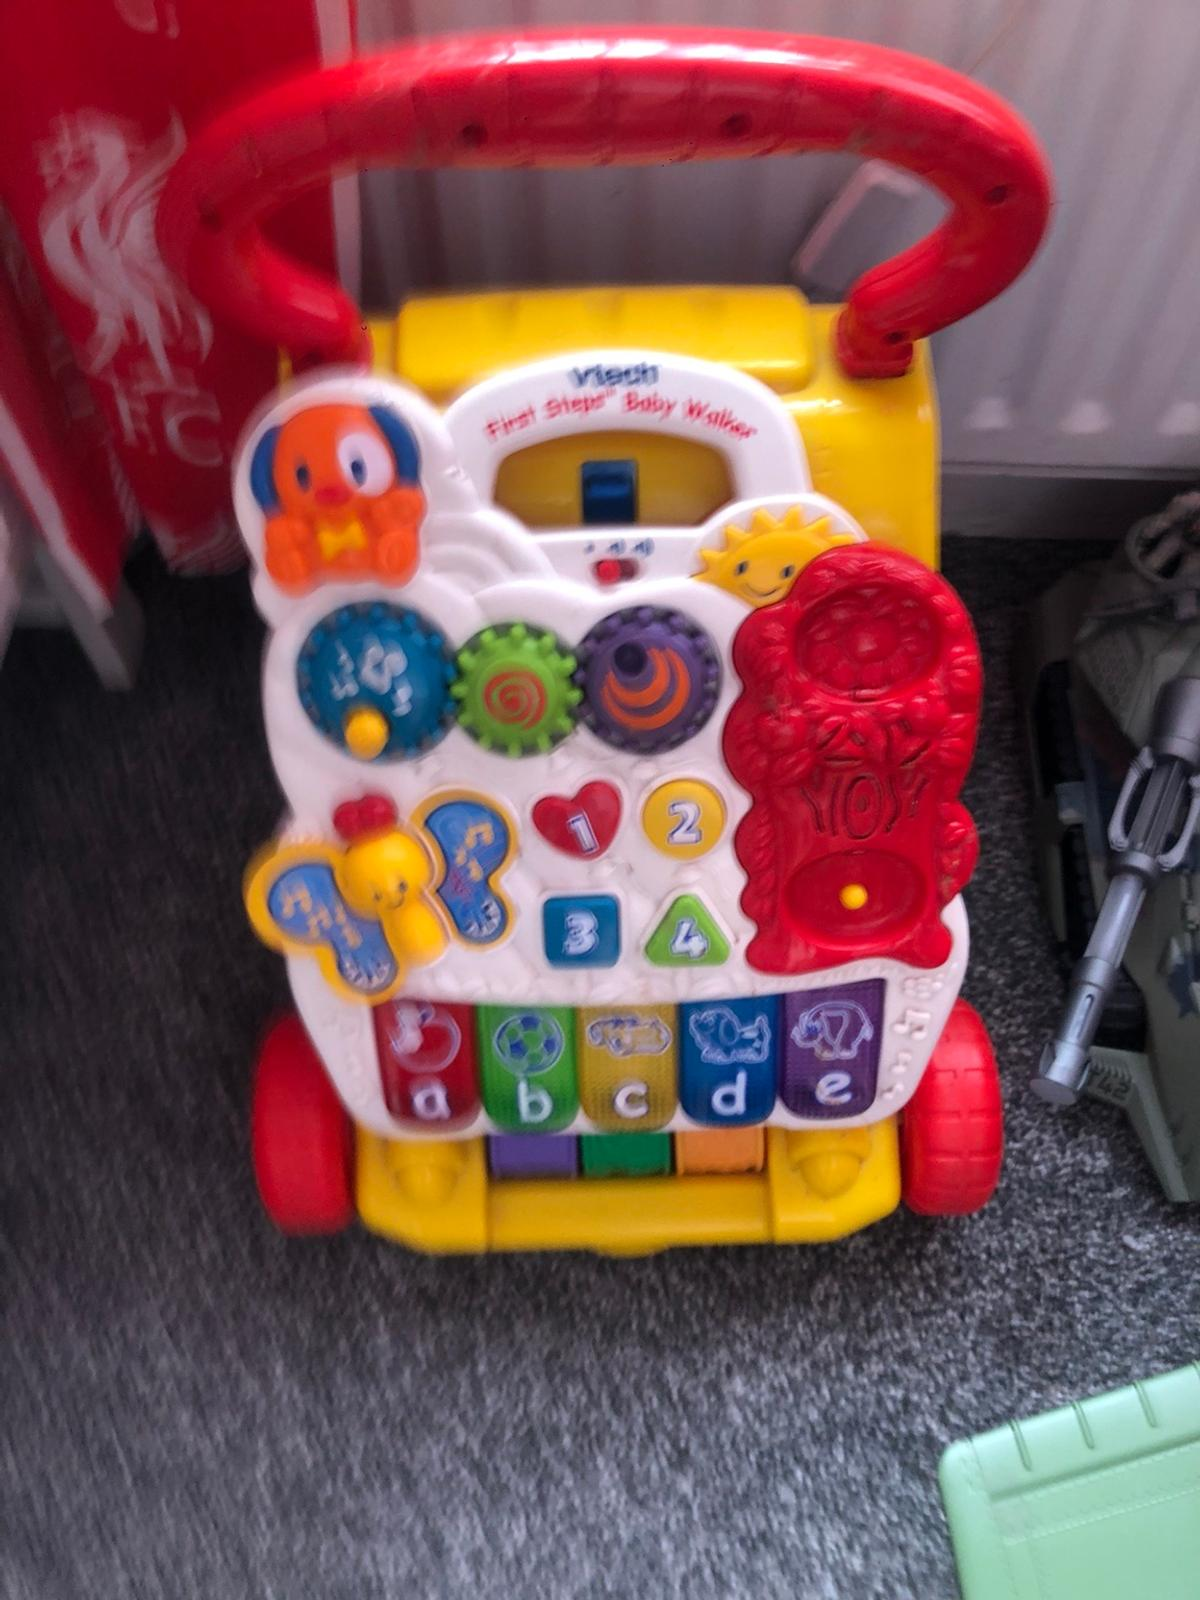 Son no longer needs £4 missing then phone but doesn't affect use at all still working batterys in